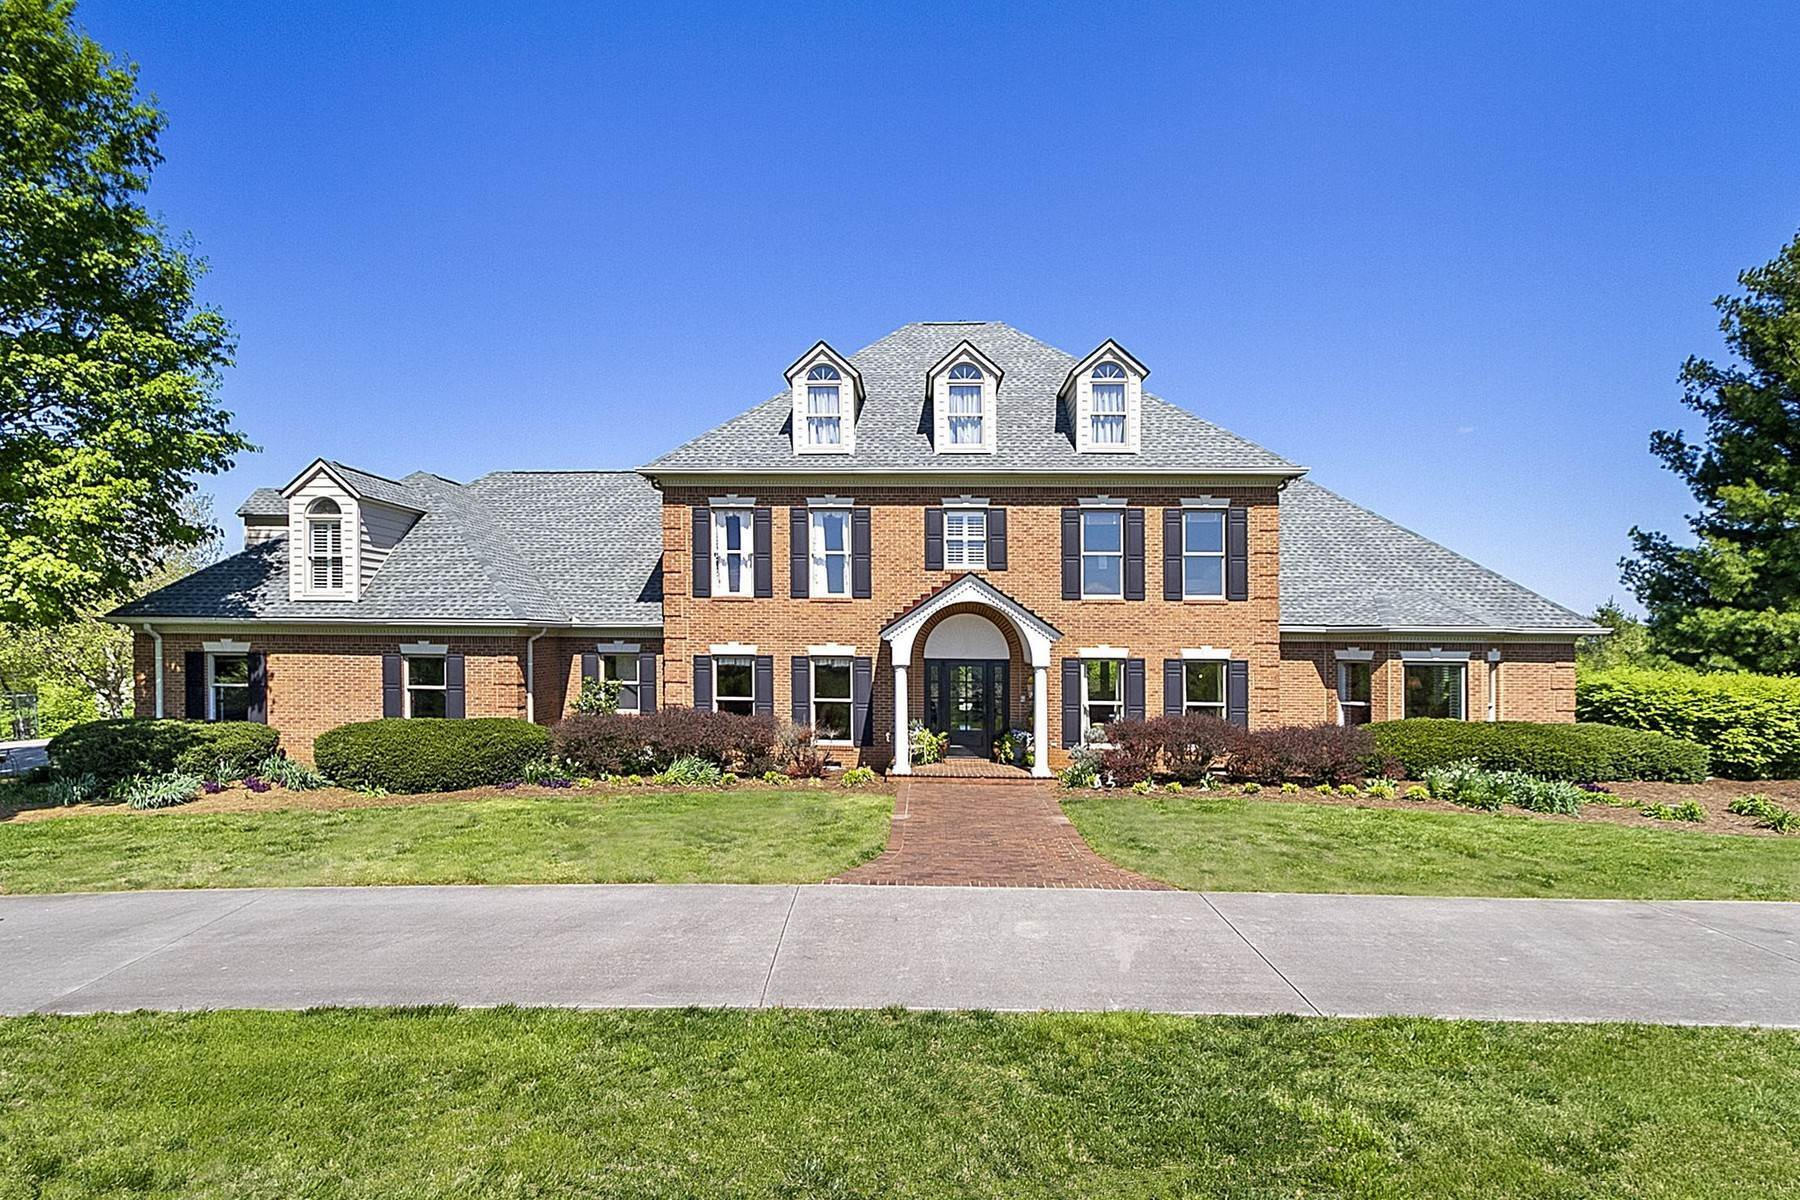 Single Family Homes for Sale at Privacy And Luxury On Over 7 Acres 10433 Bob Gray Road Knoxville, Tennessee 37932 United States